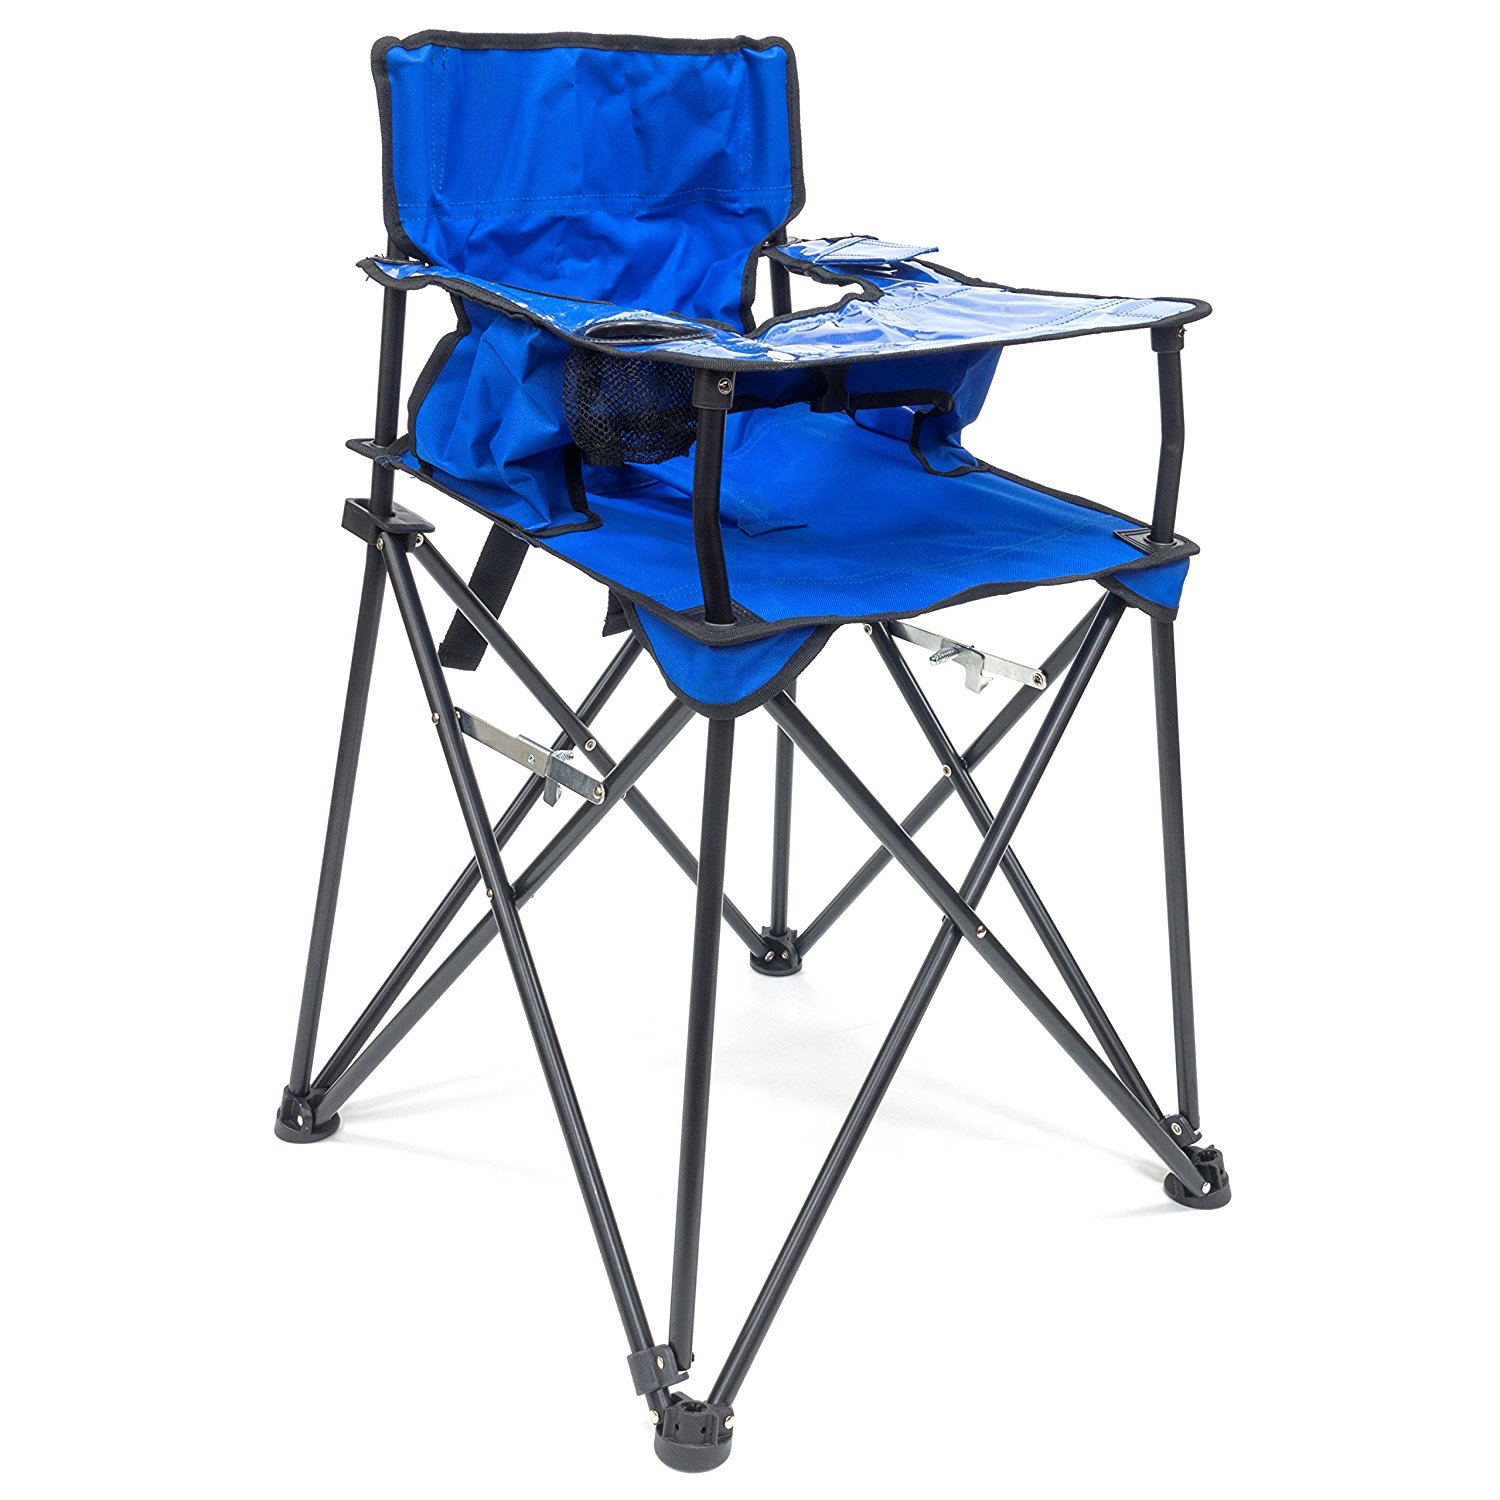 Creative Outdoor Distributors 507284-Blue Folding Baby High-Chair with Table Tray & Cup Holder Baby High Chair, Blue